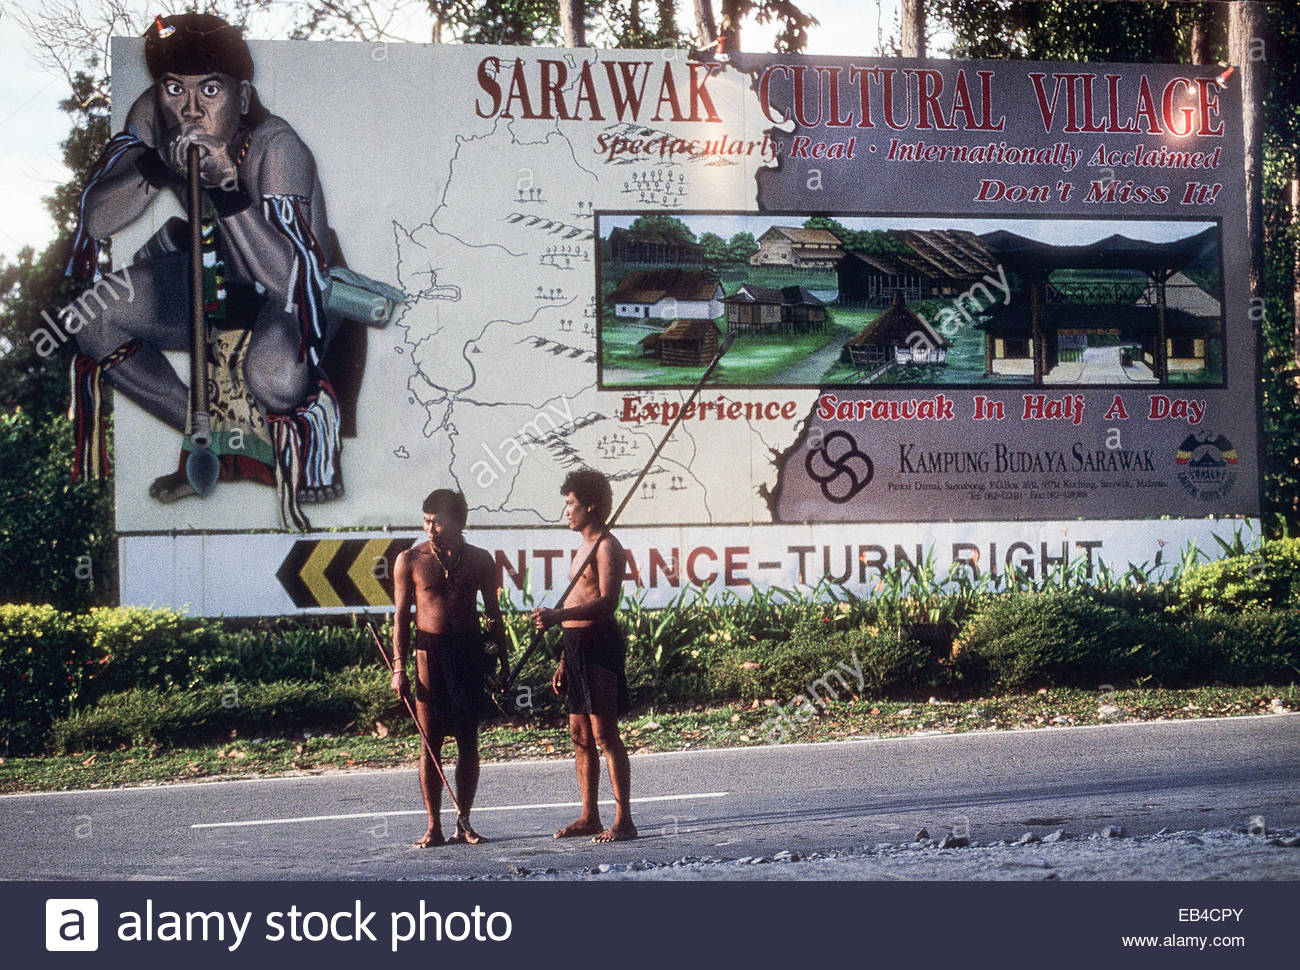 In a theme park, non-Penan men hired to represent the Penan, whose habitat is being destroyed. - Stock Image